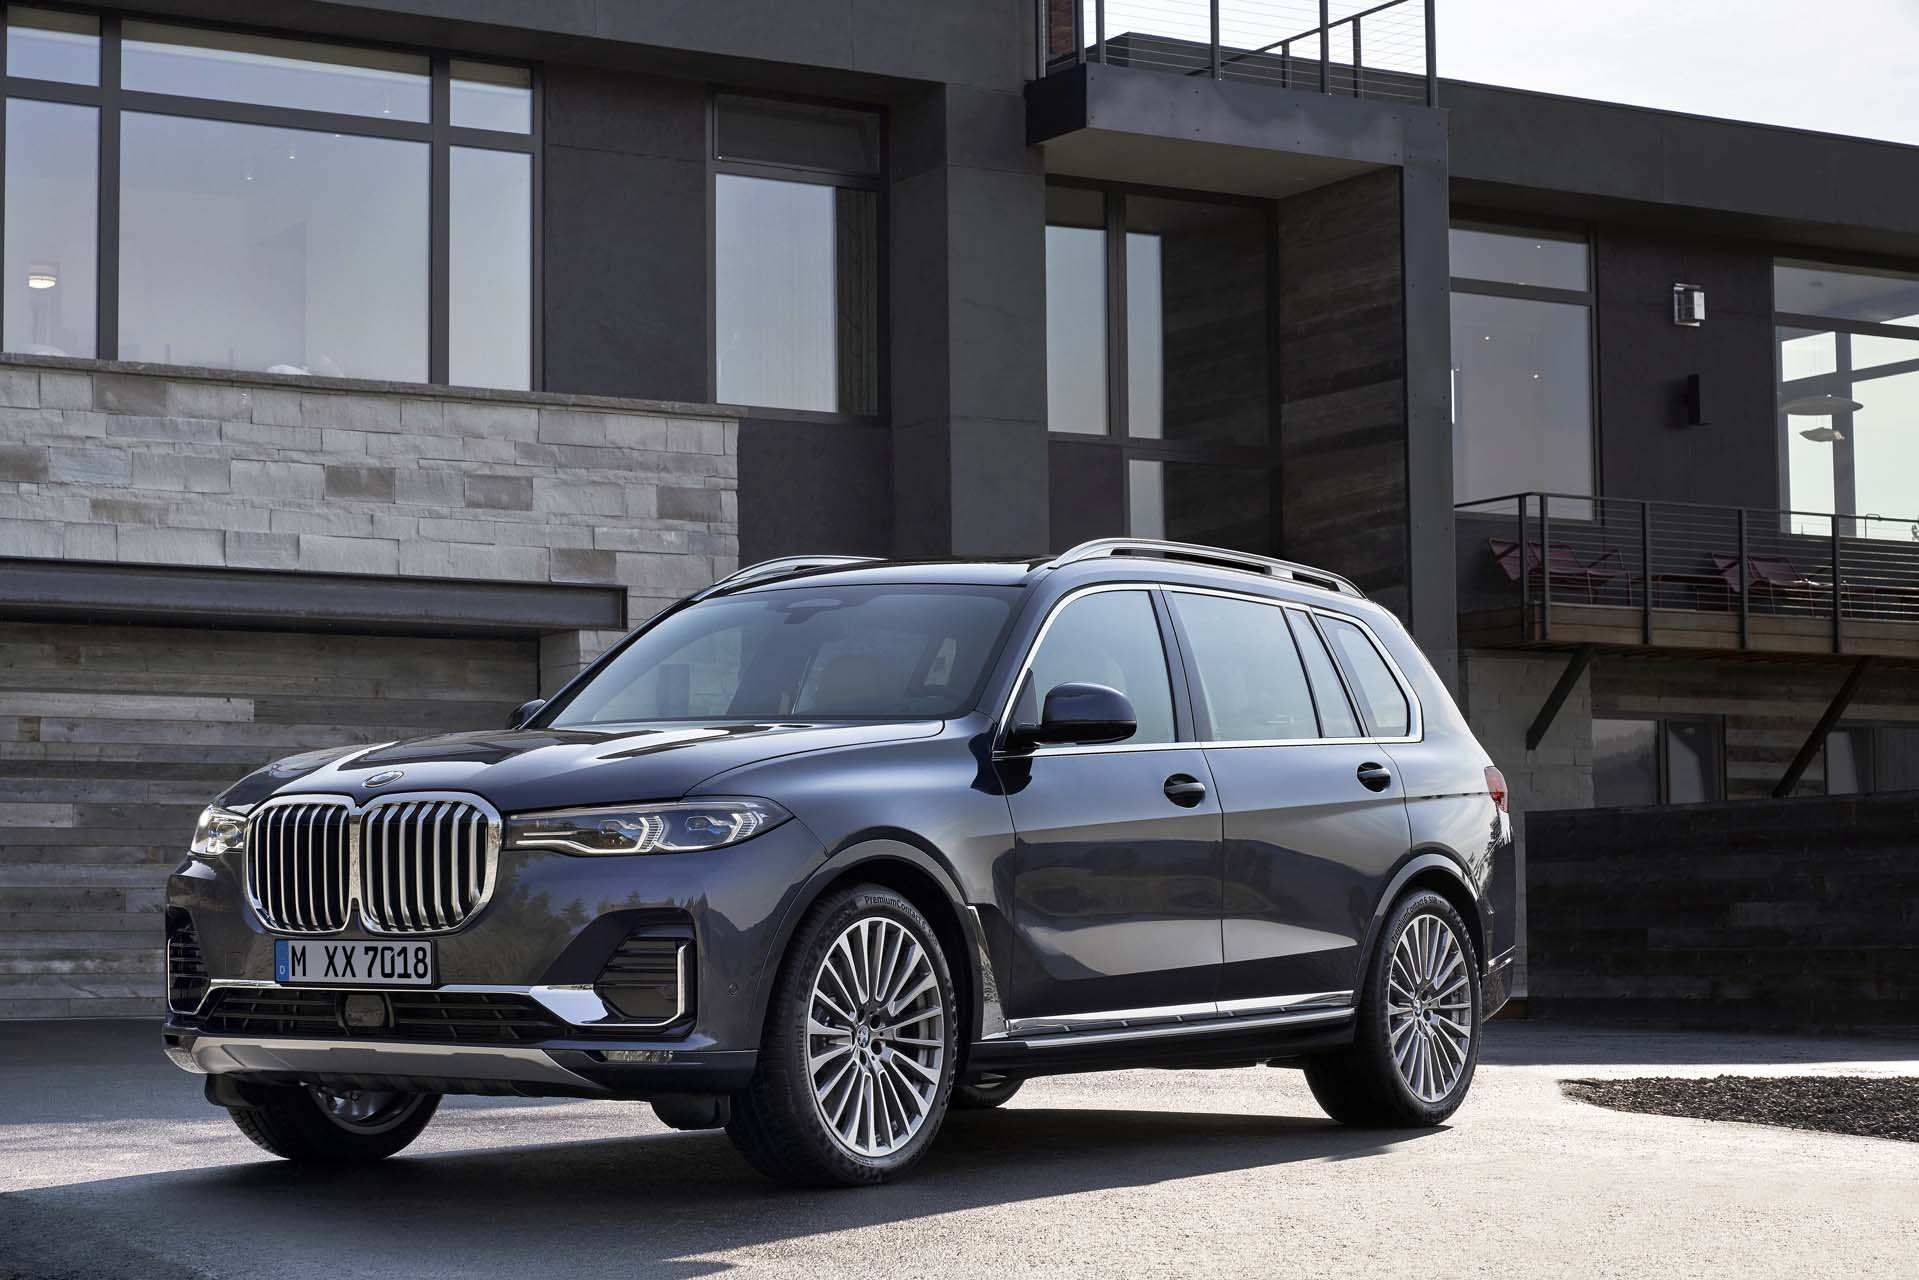 83 The Best 2019 BMW X7 Style